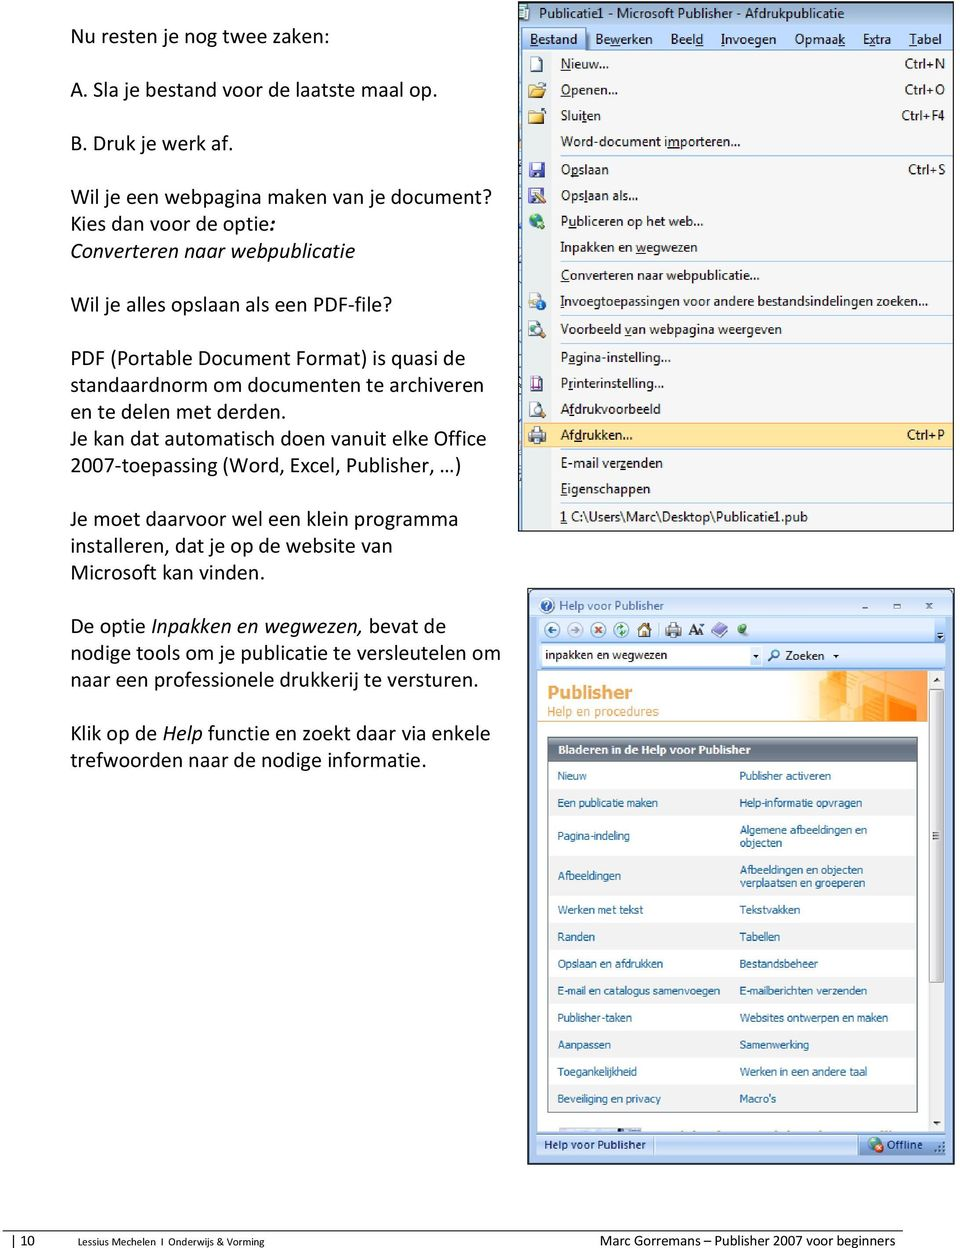 PDF (Portable Document Format) is quasi de standaardnorm om documenten te archiveren en te delen met derden.